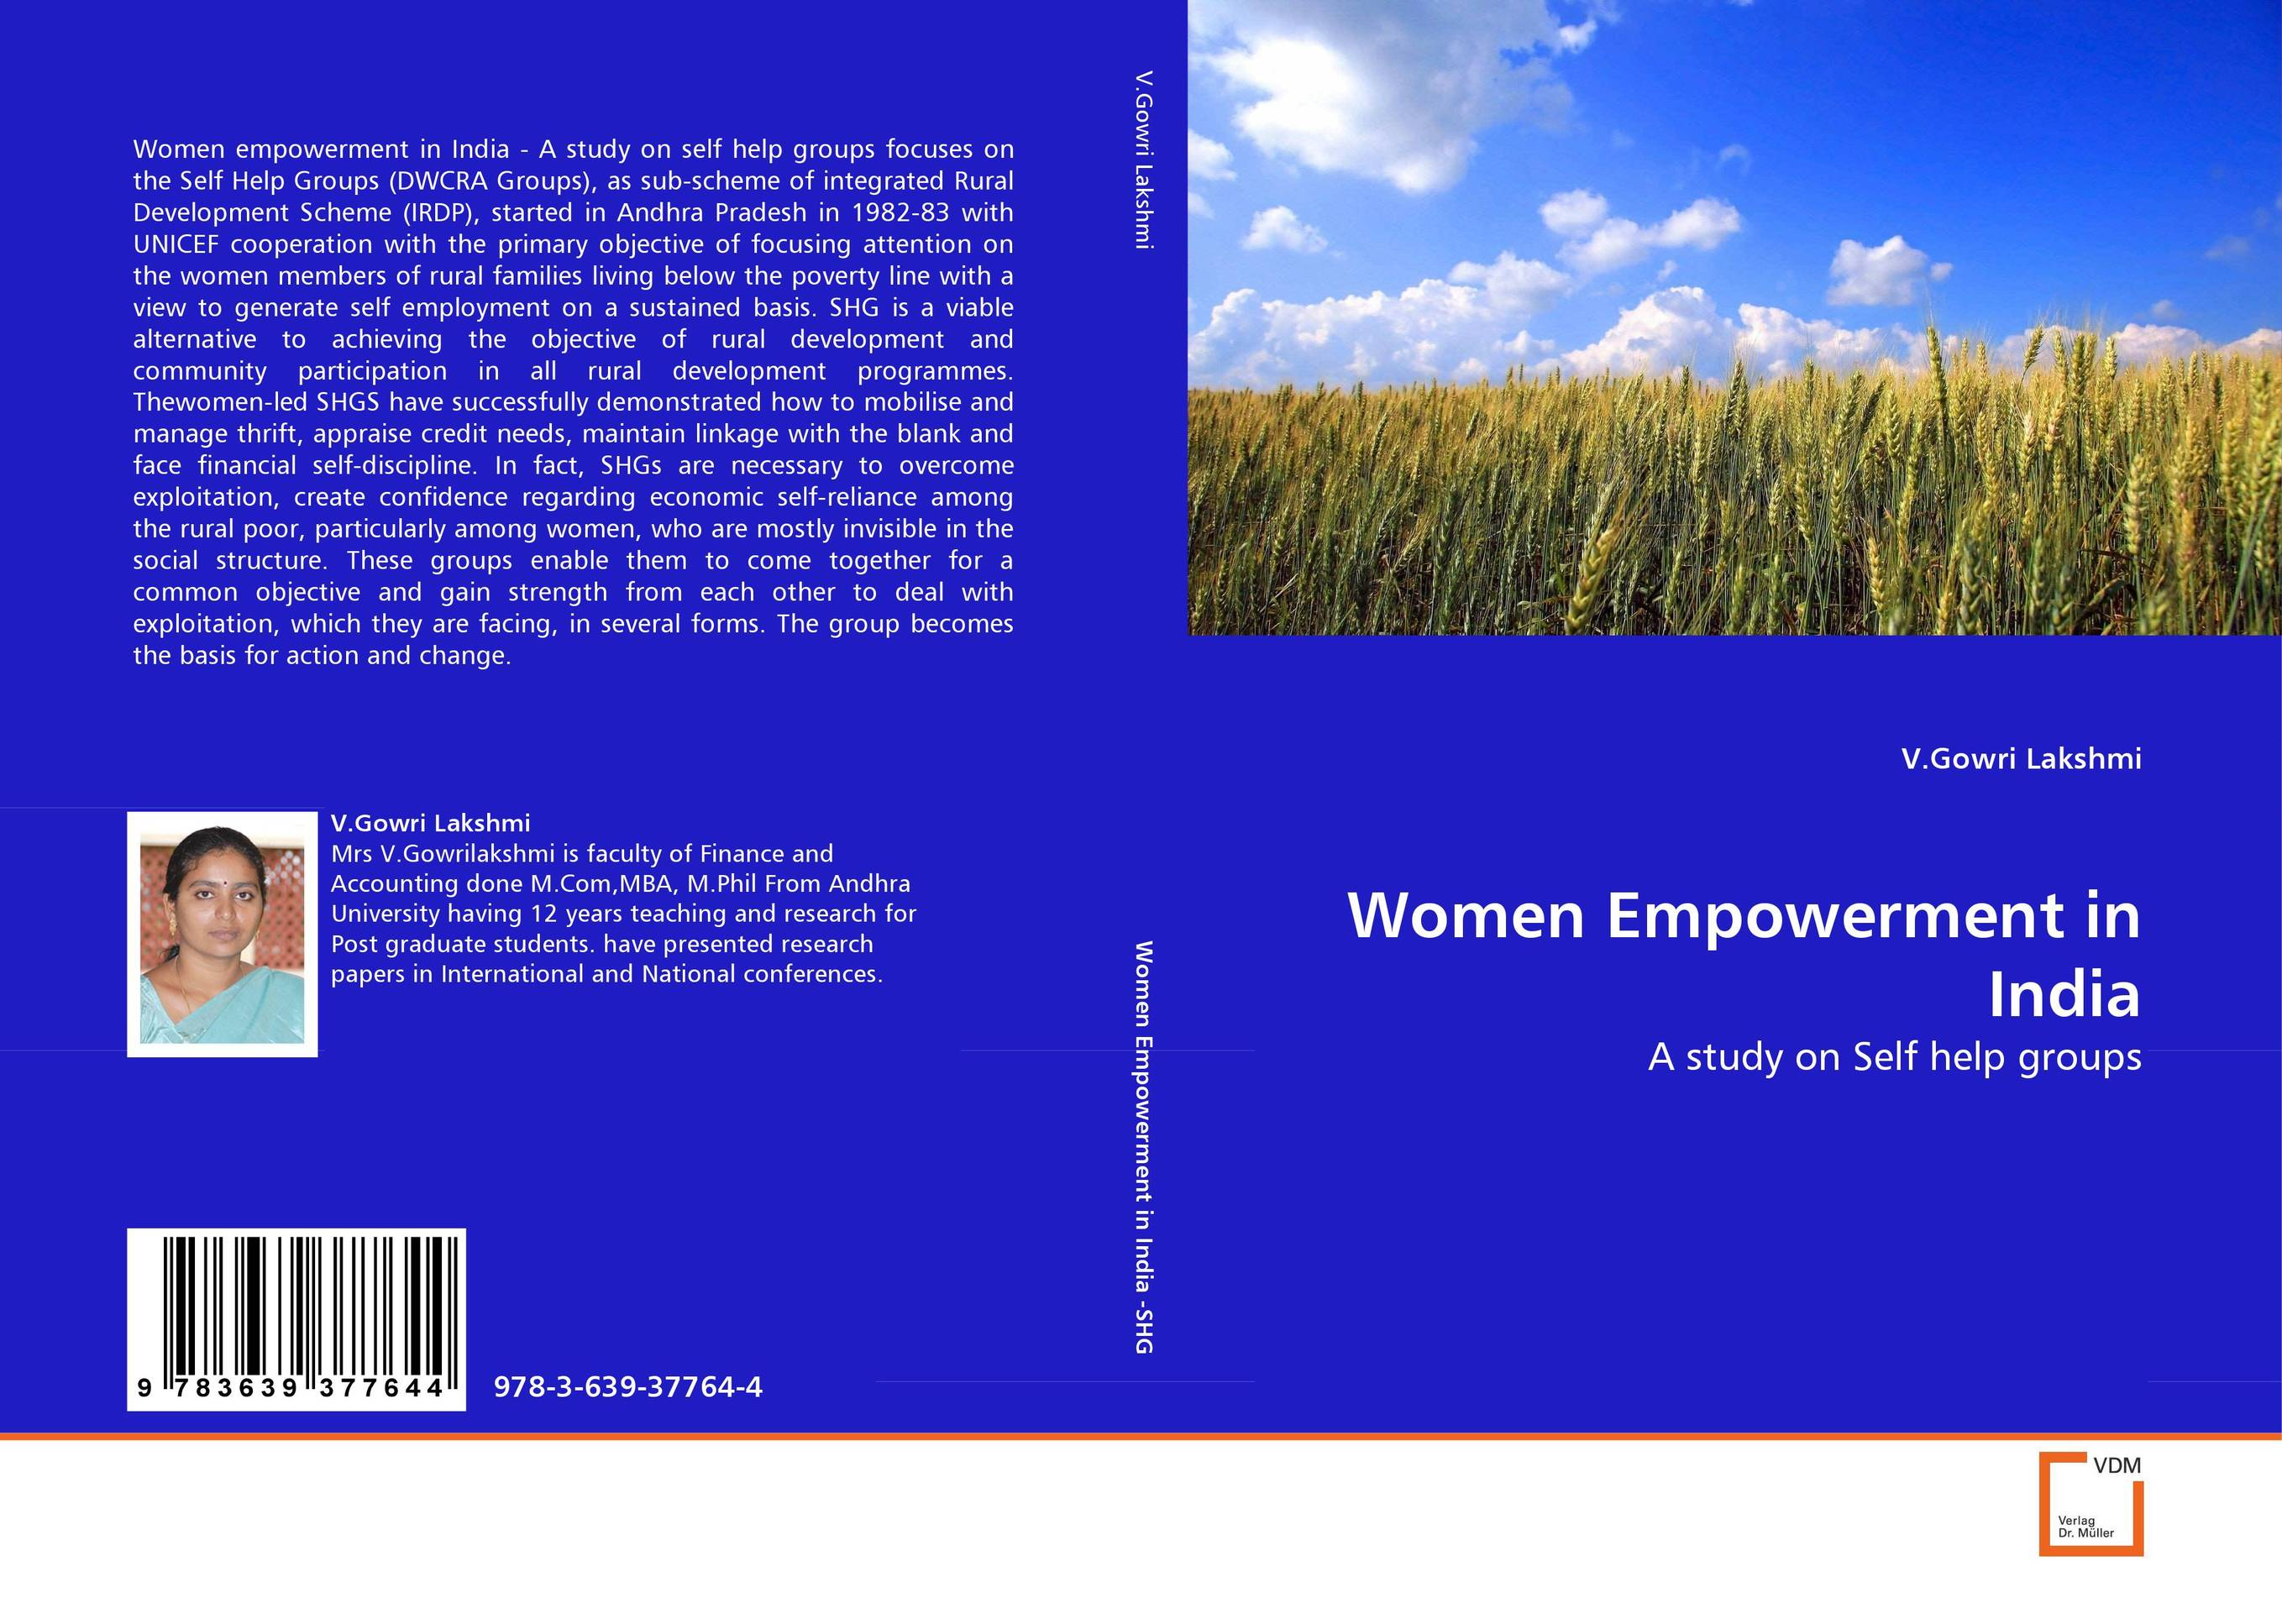 Women Empowerment in India women empowerment through self help groups in rural areas